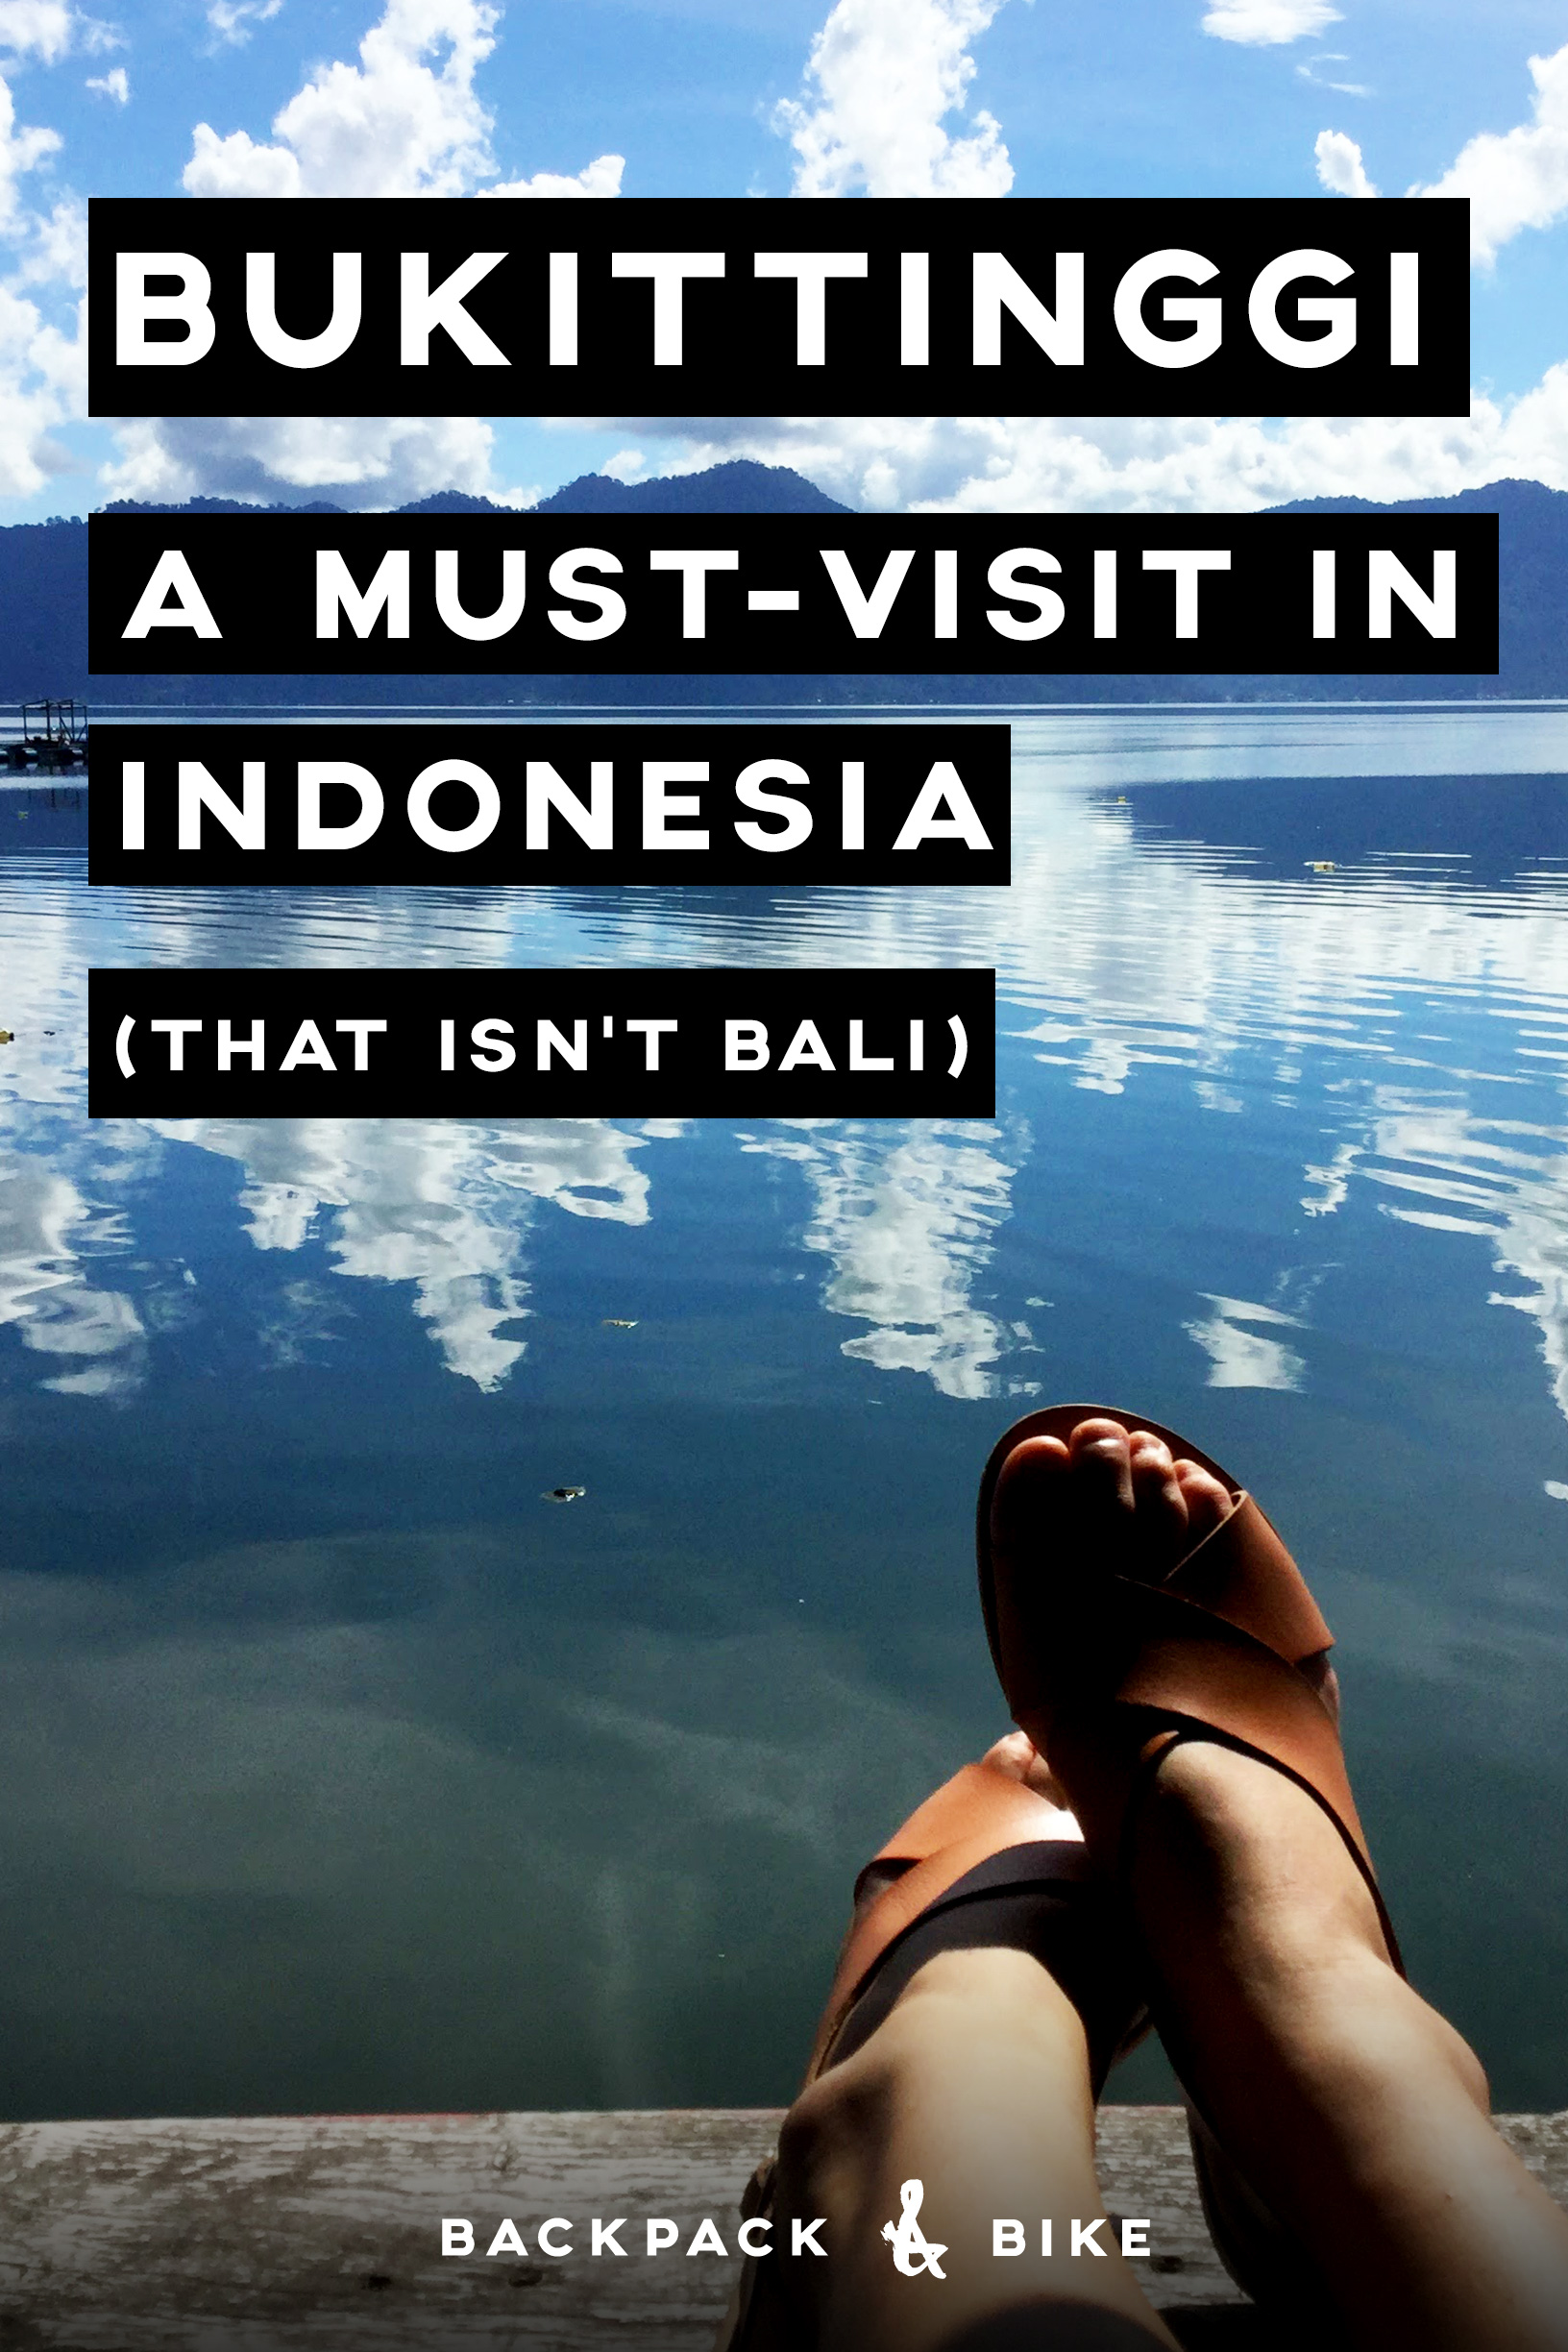 Bukittinggi   A must-visit in indonesia (that isn't bali)   Bukittinggi is an under visited gem that's overshadowed by its eastern sibling, Bali. Don't be fooled, the mountains have just as much to offer as the islands.